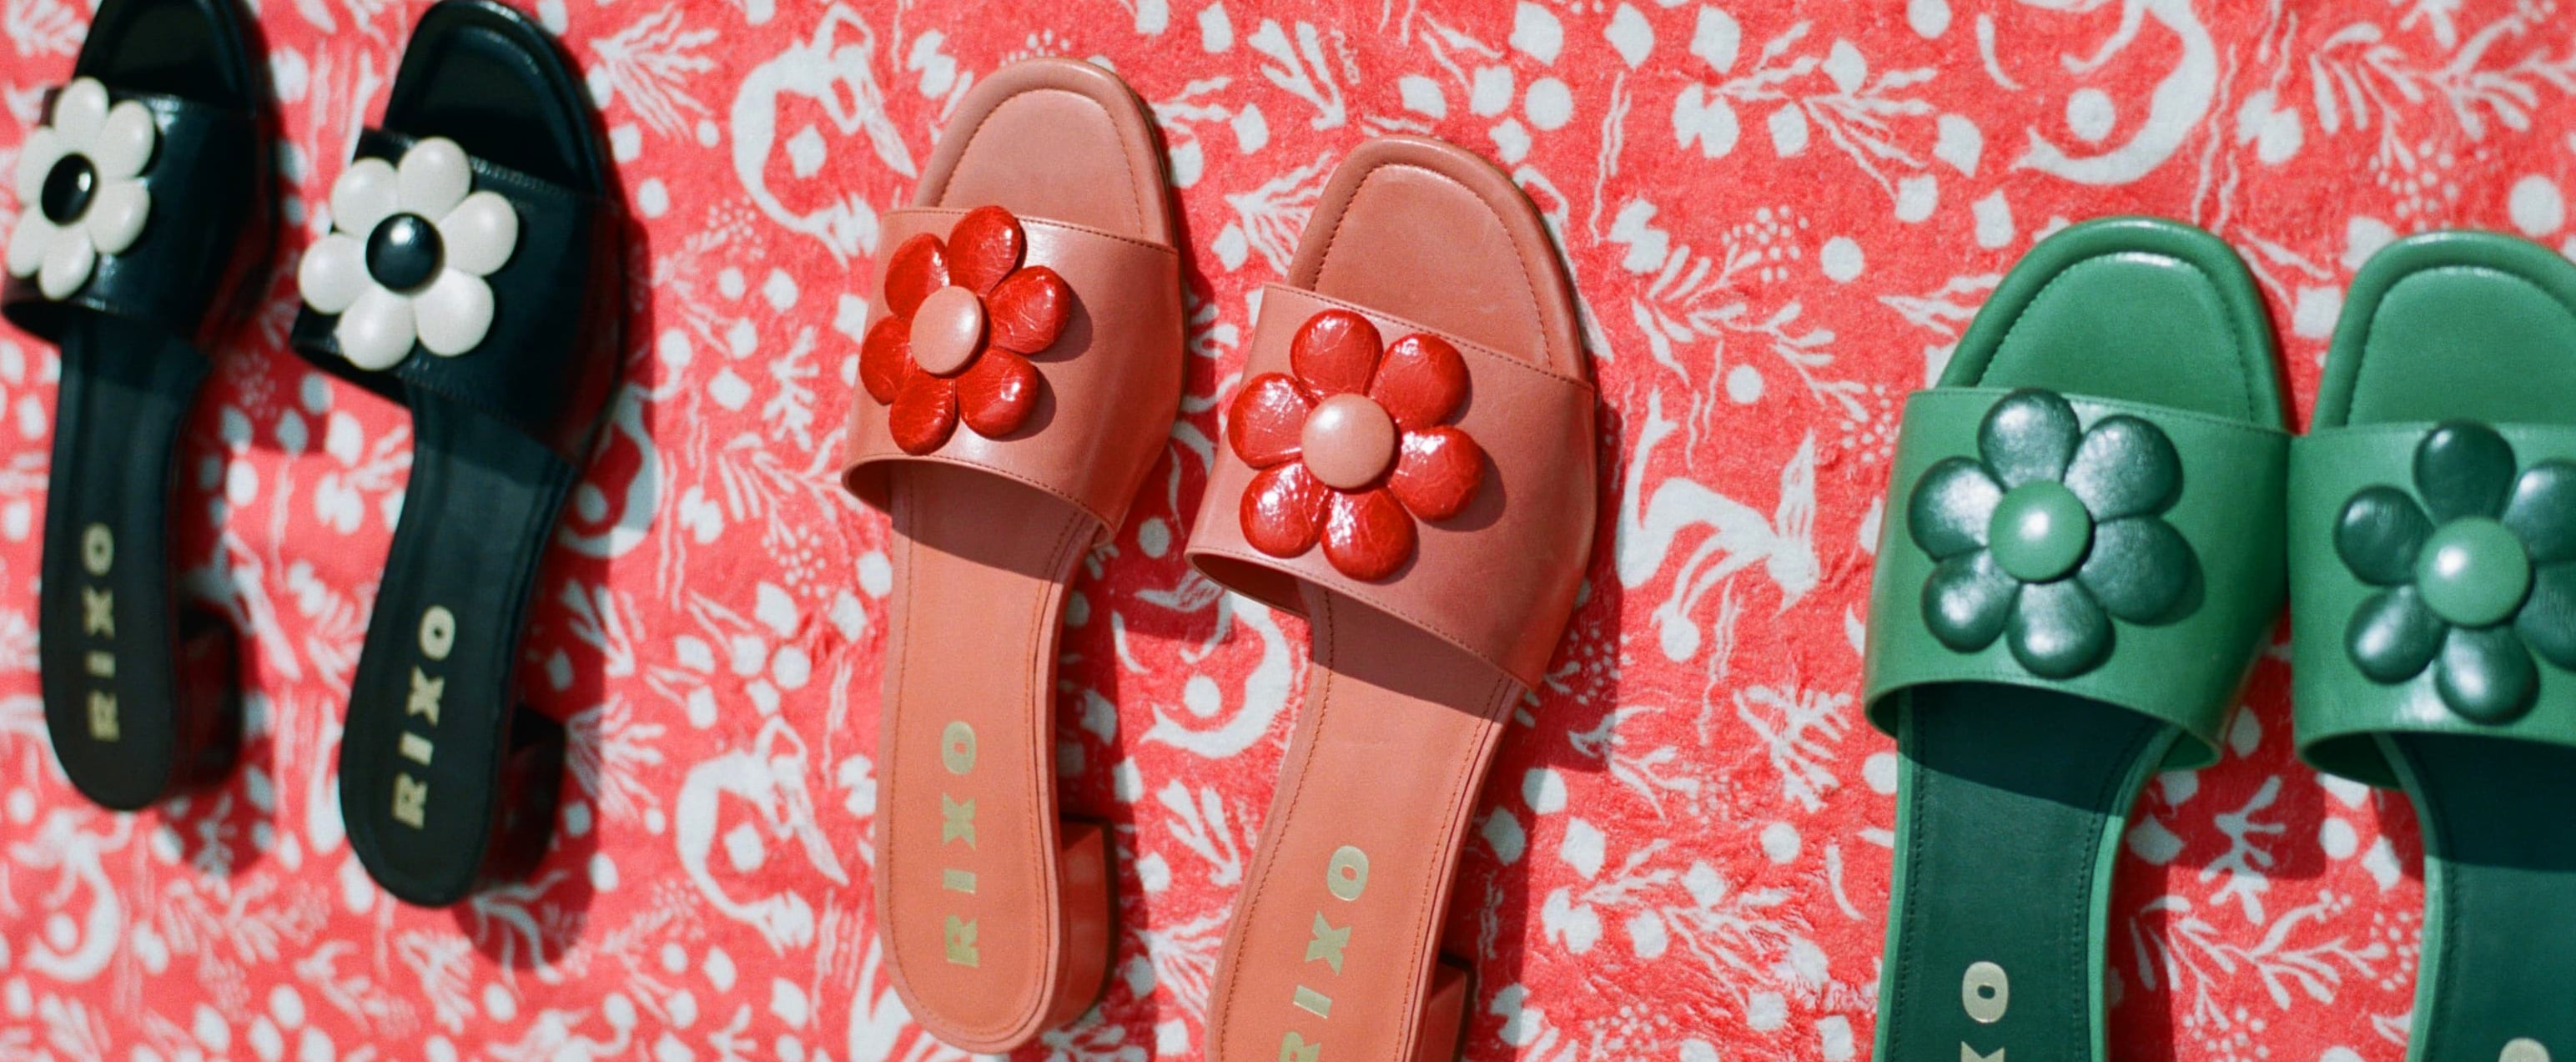 RIXO Debuts Shoe Collection of Midheel Summer Sandals